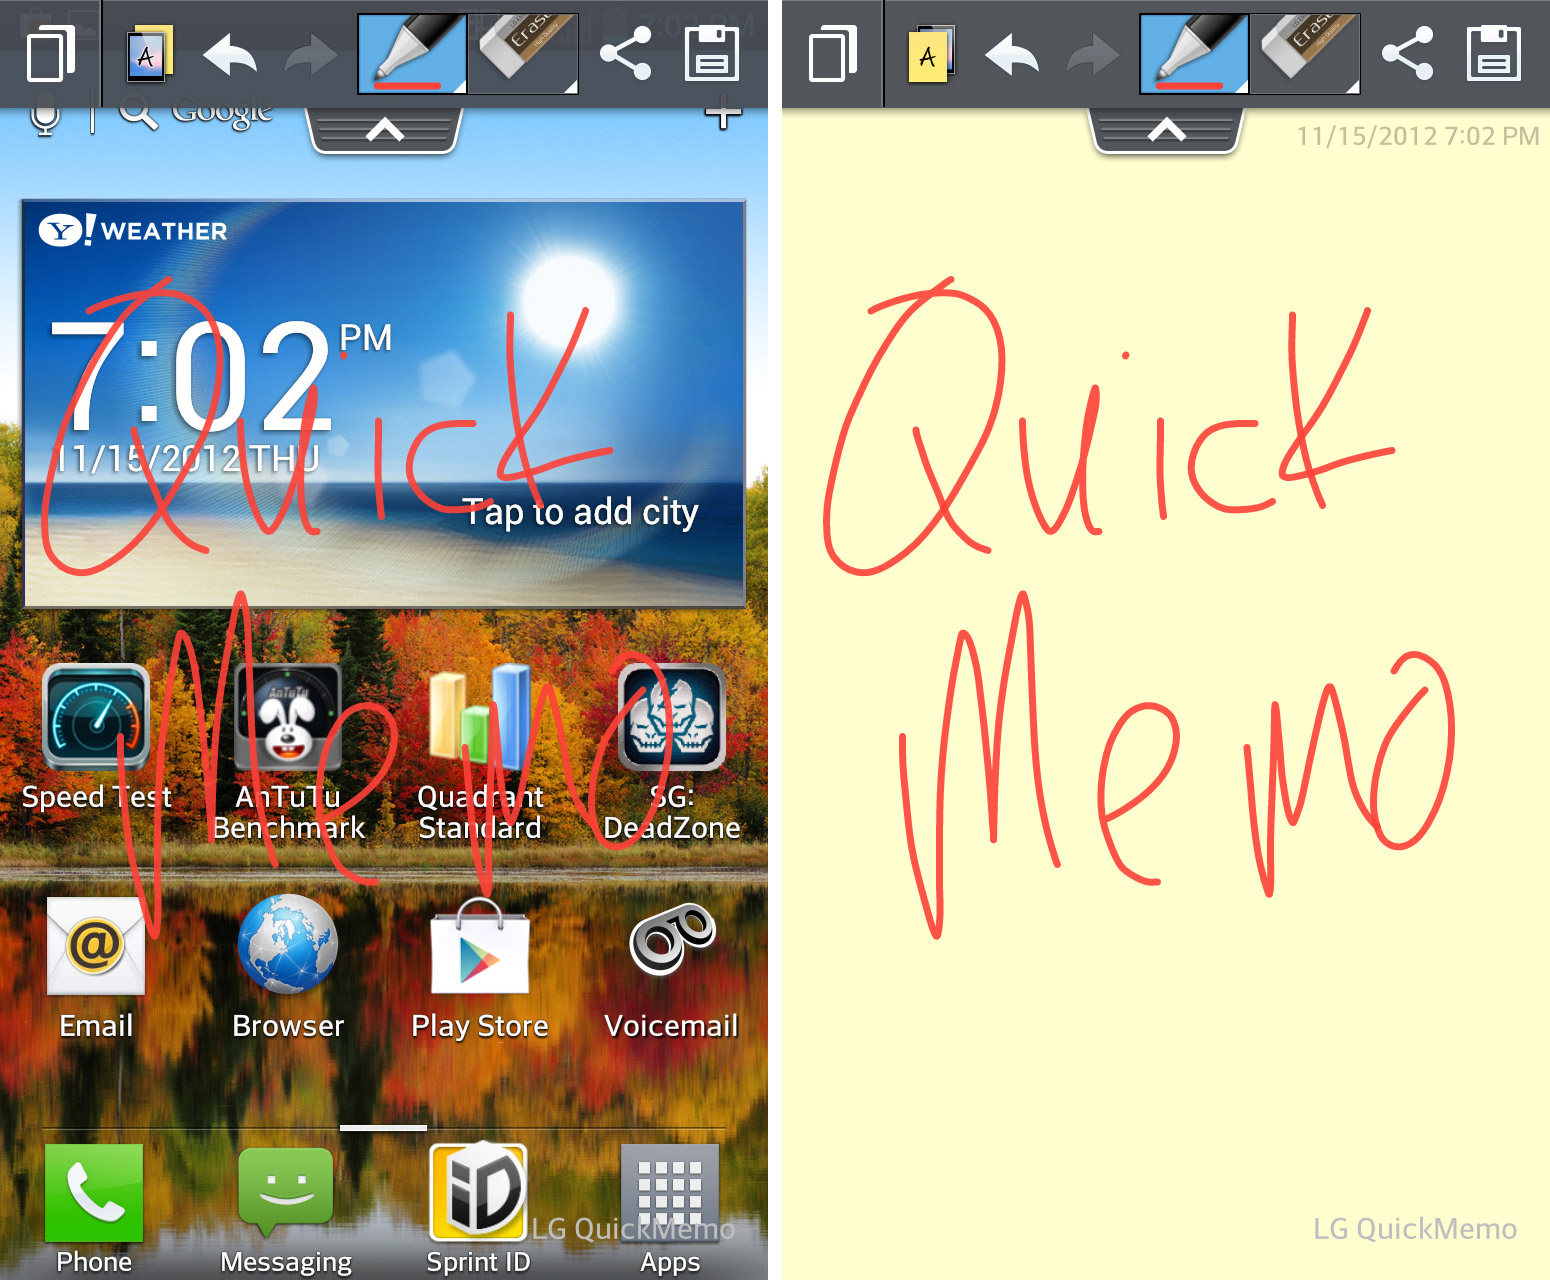 QuickMemo picture or screenshot